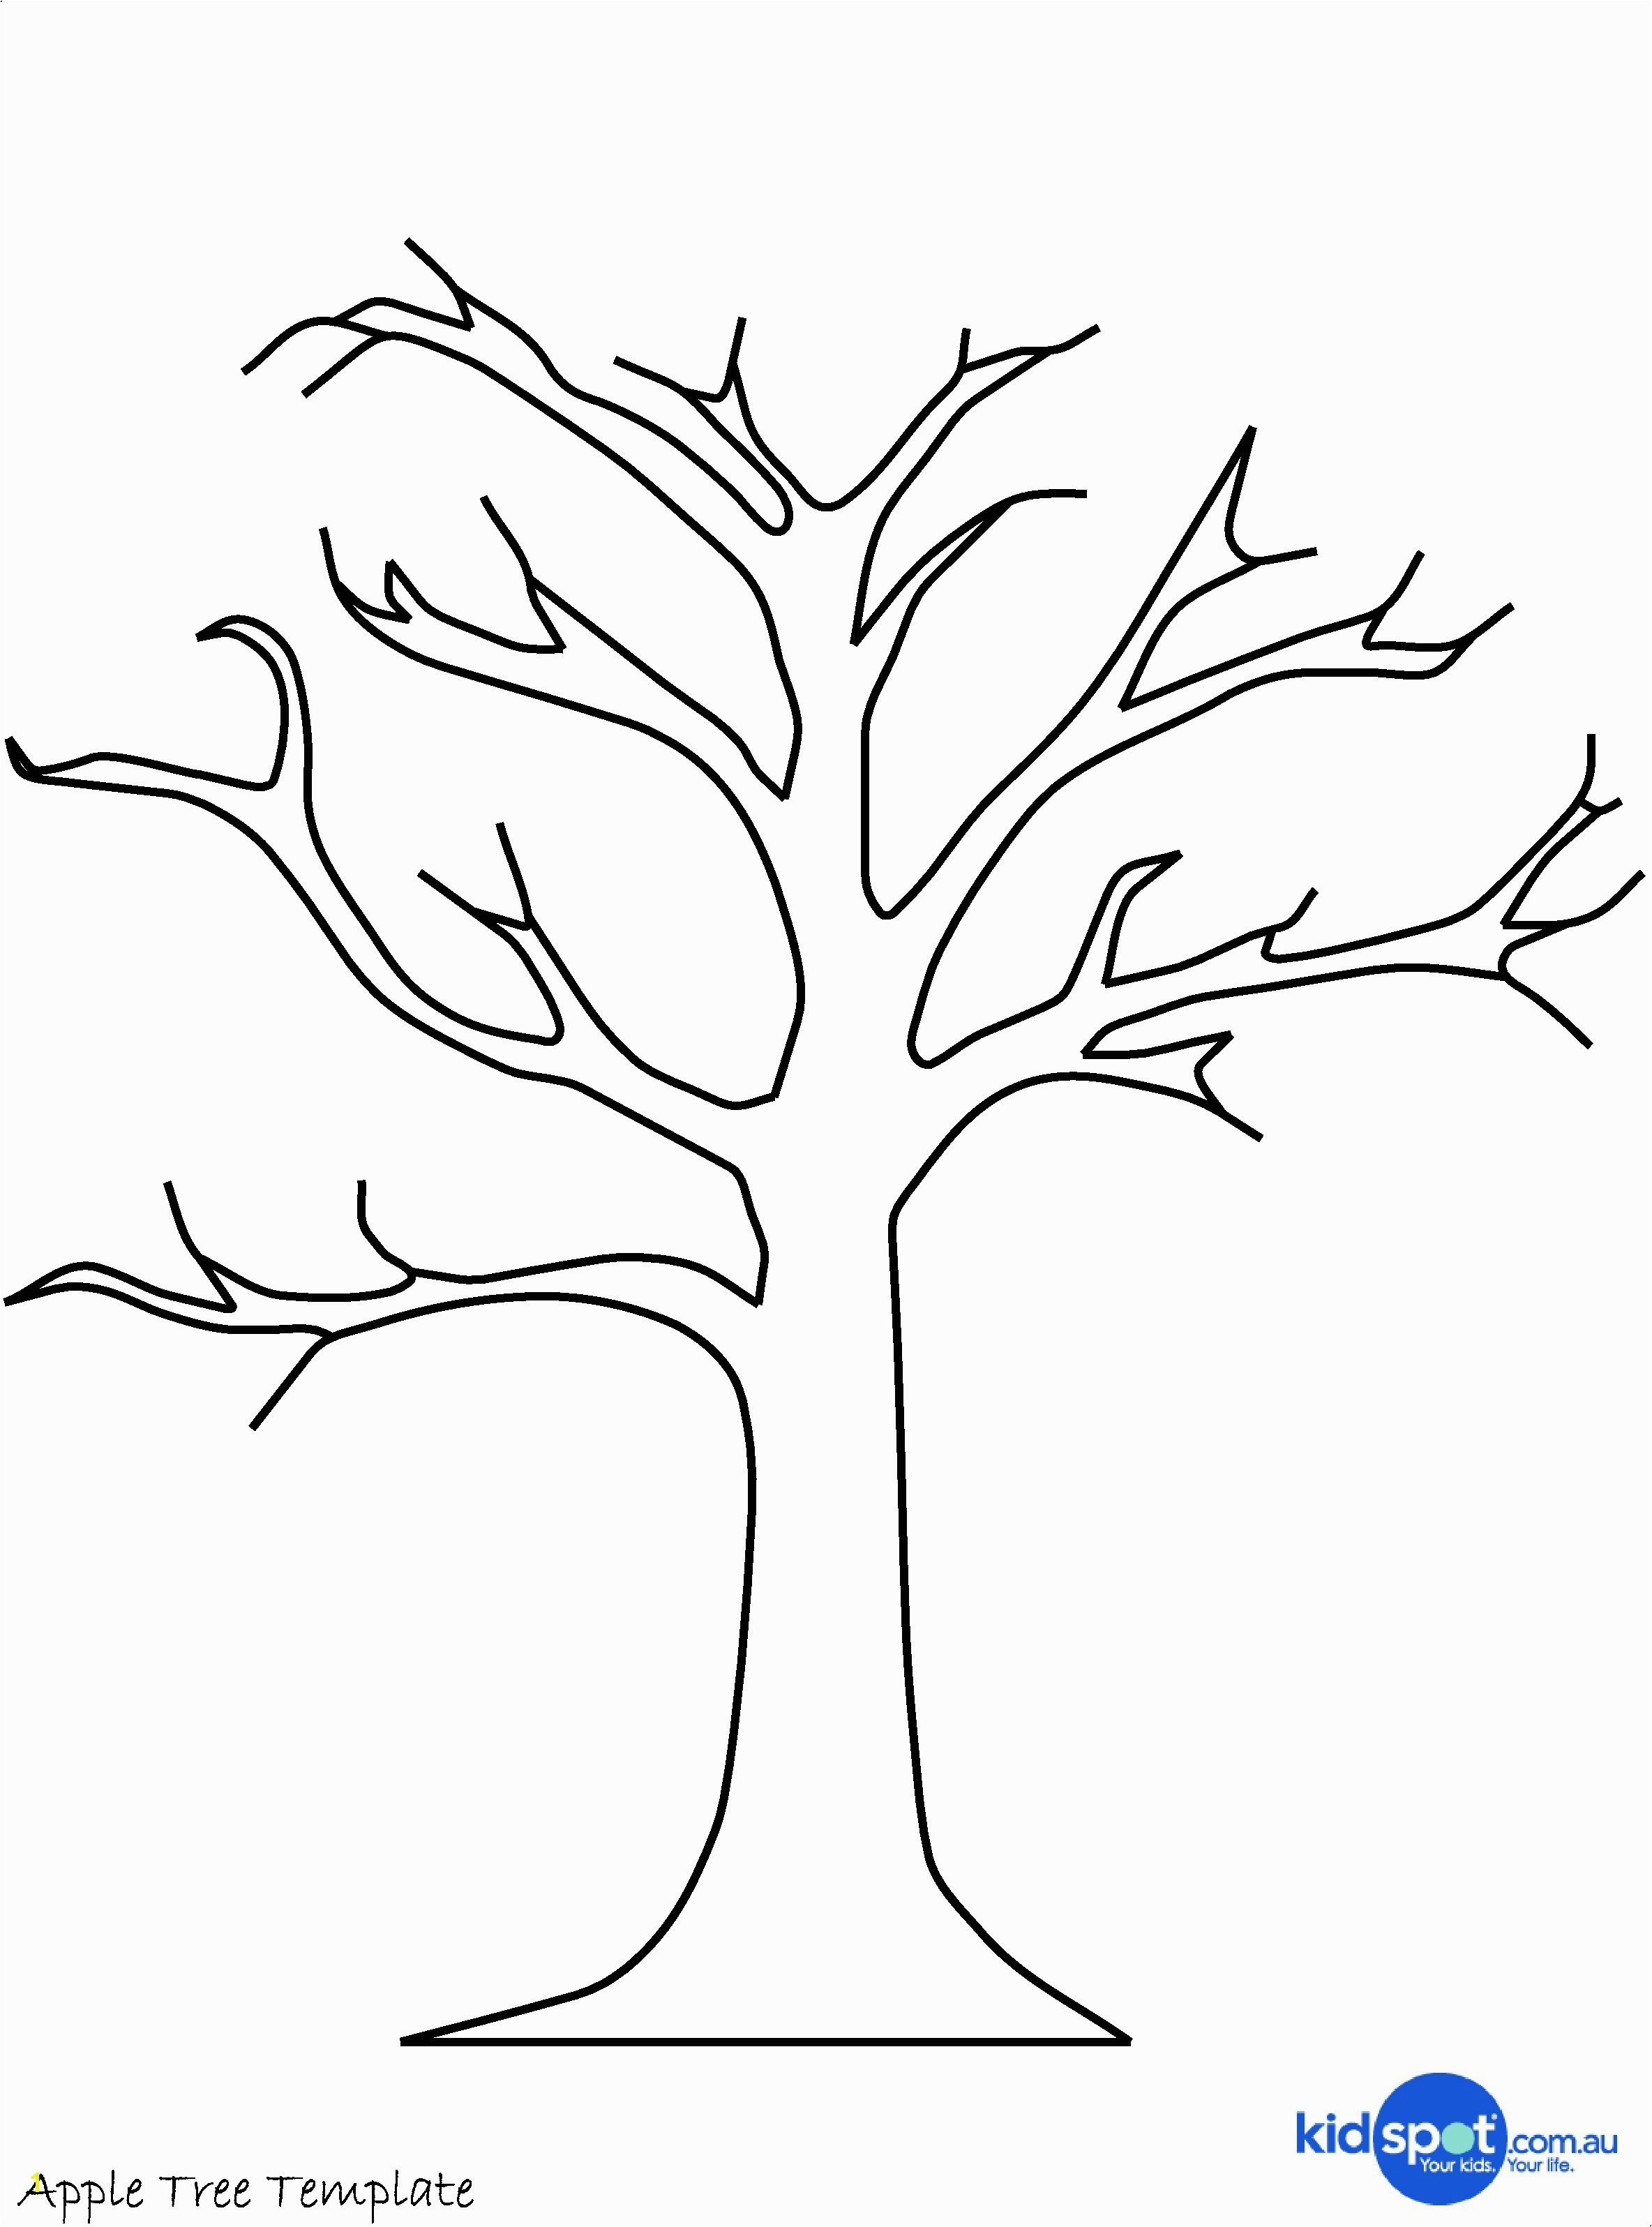 sycamore tree coloring pages 20g fresh tree craft cork stamp apple tree best sycamore leaf template coloring page no